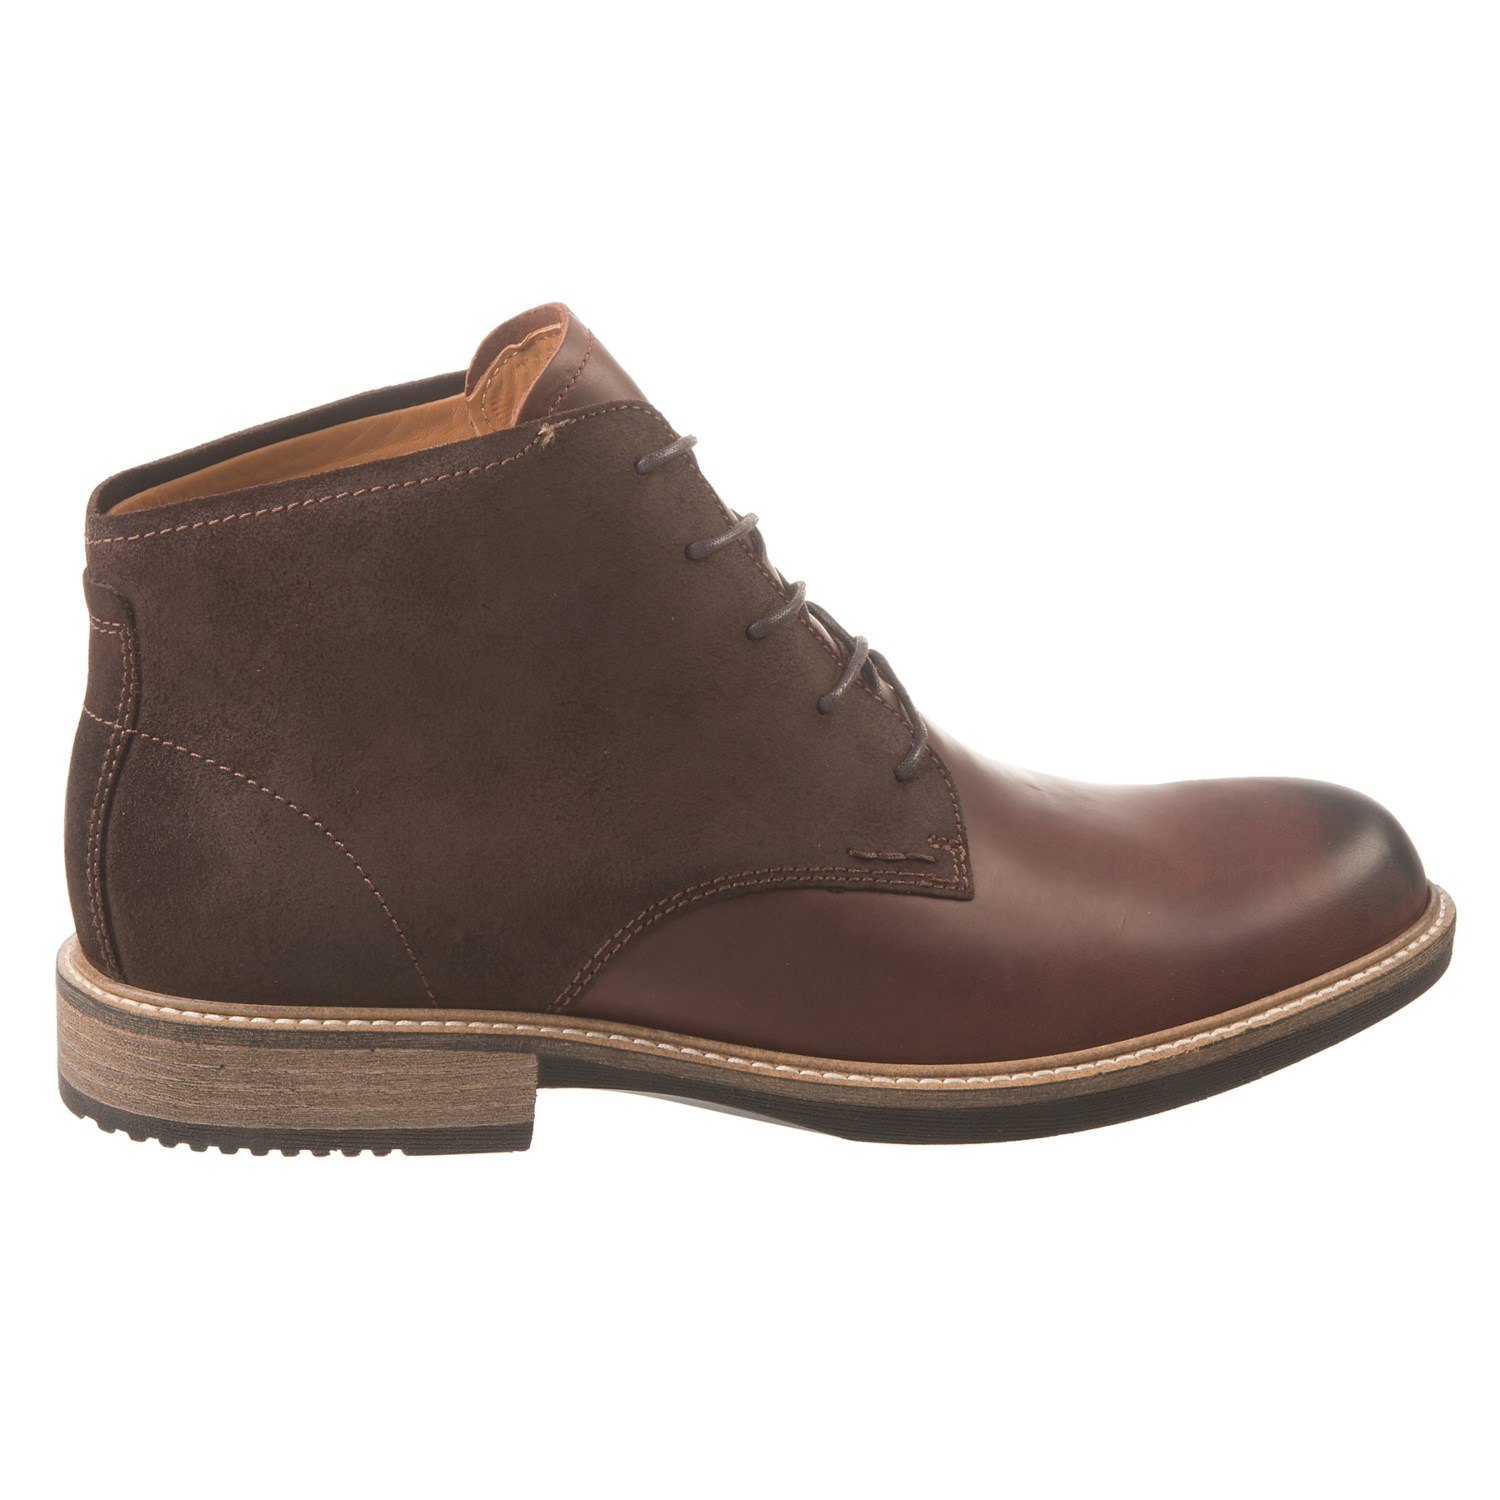 ECCO Kenton Leather Boots (For Men) - Save 55%